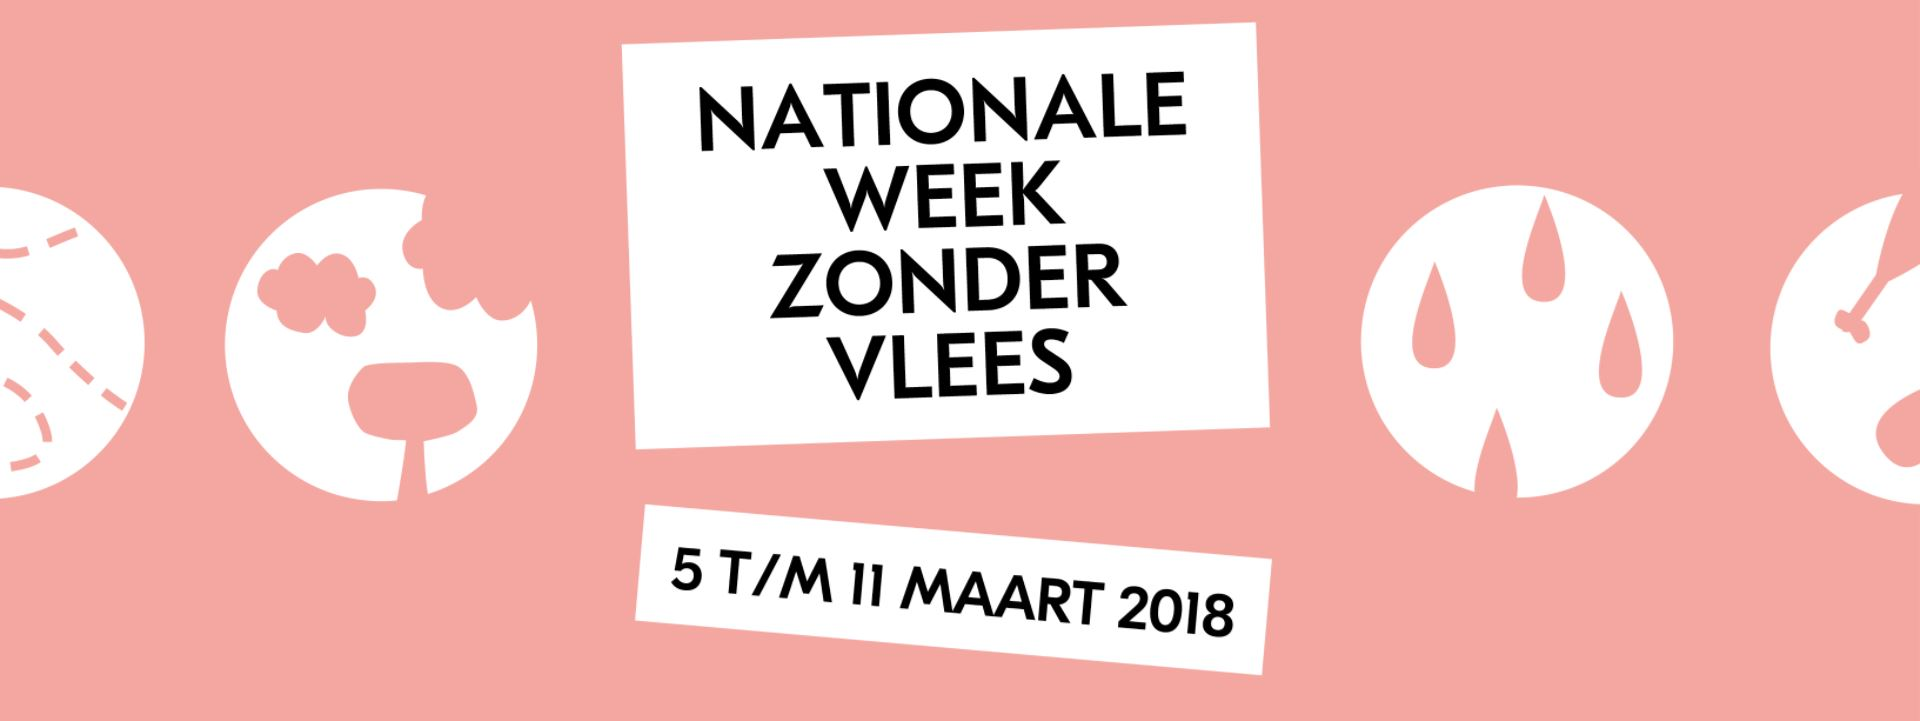 Nationale-week-zonder-vlees